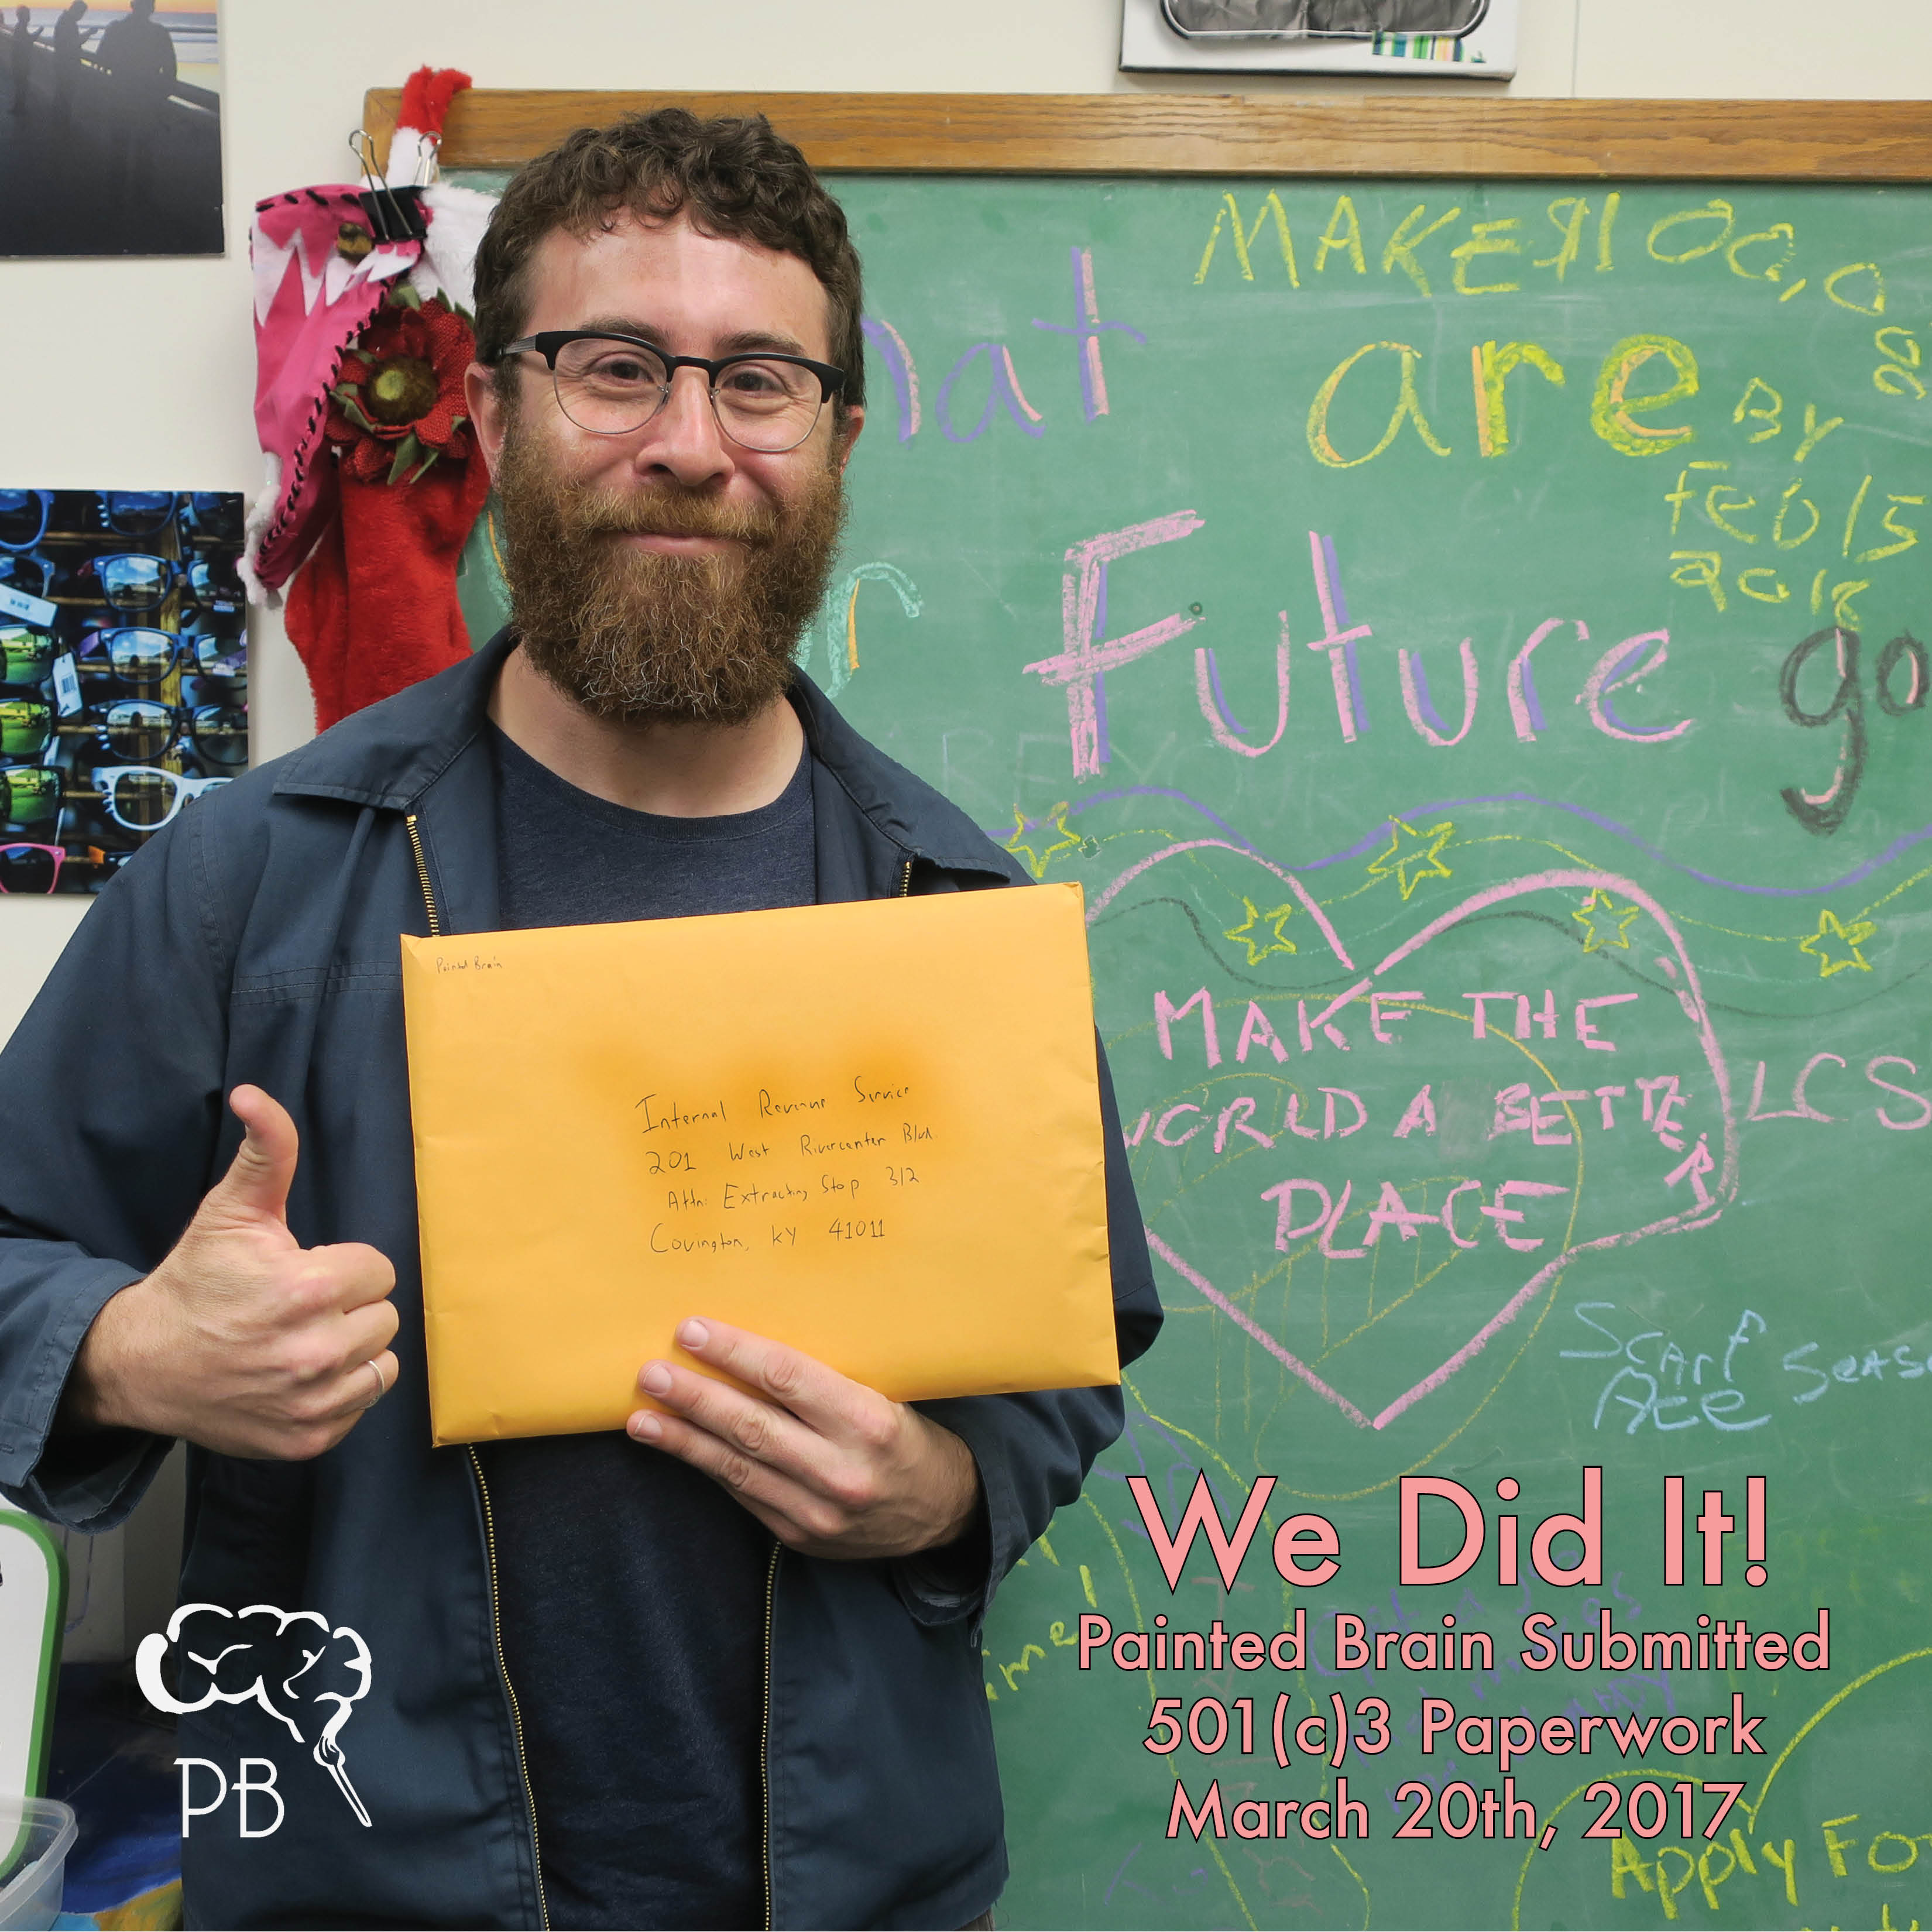 We did it! Painted Brain submitted 501(c)3 paperwork March 20, 2017